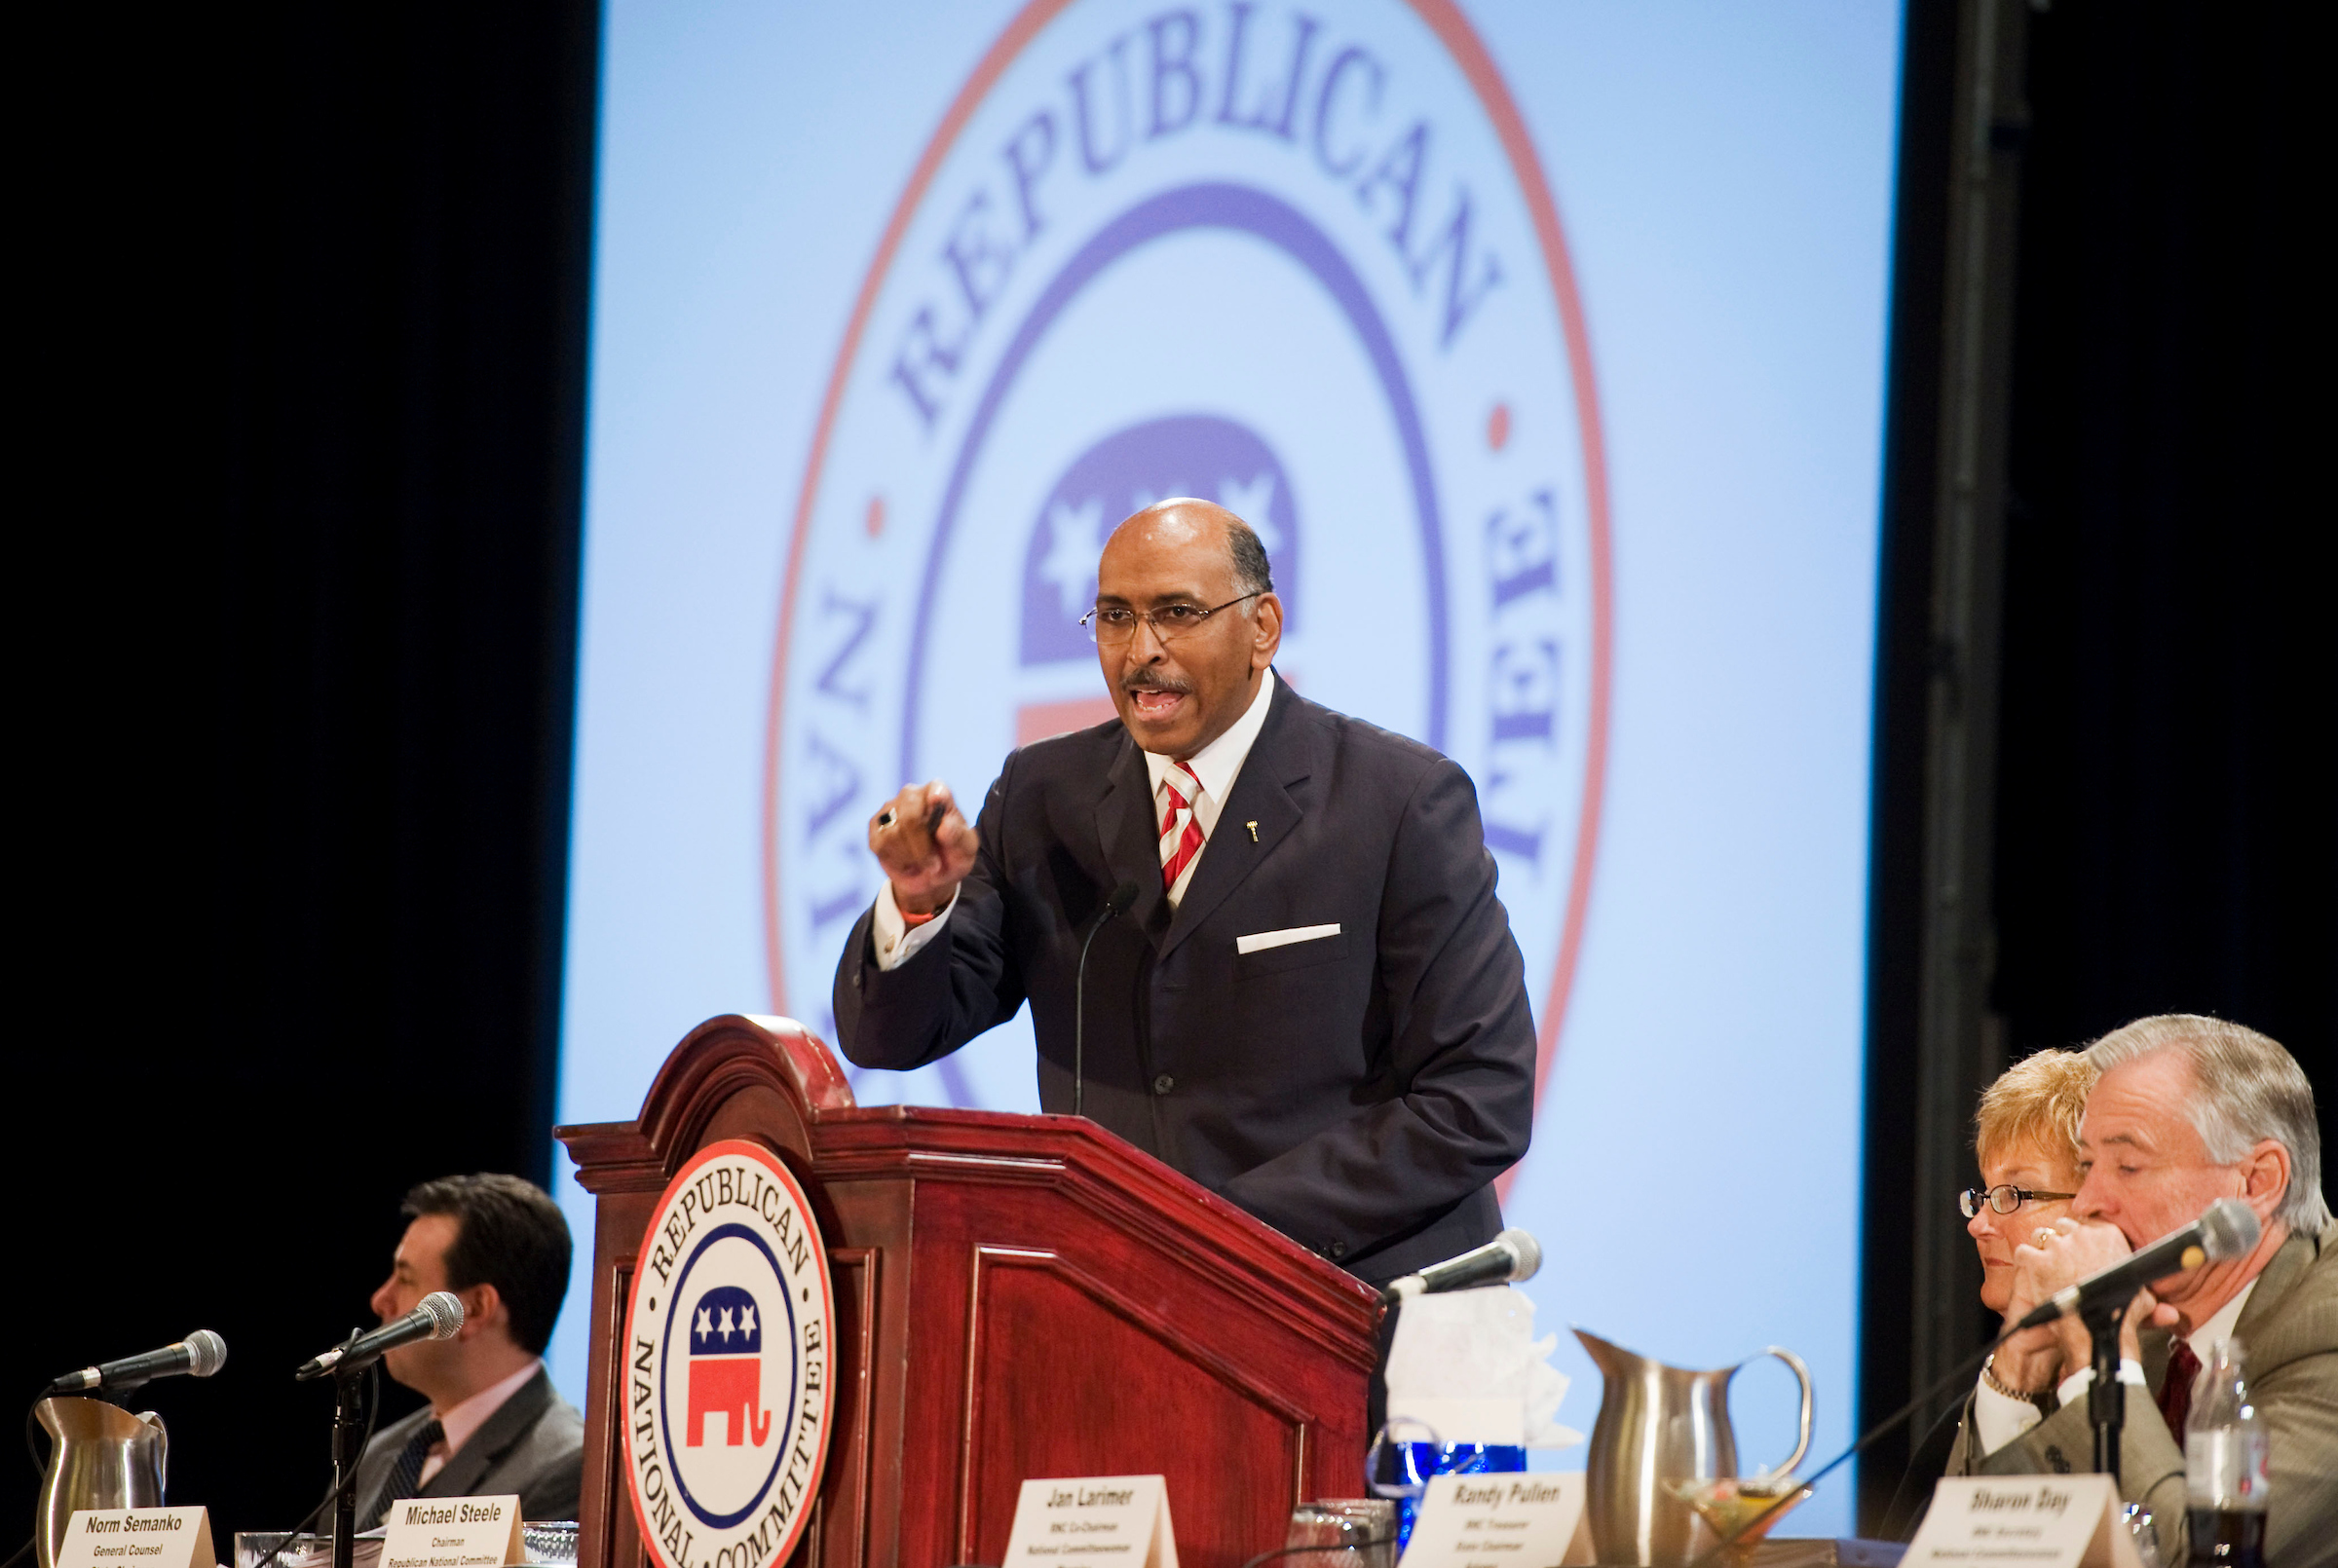 Then-Republican National Committee Chair Michael Steele speaks to party activists in 2011. (Tom Williams/Roll Call file photo)